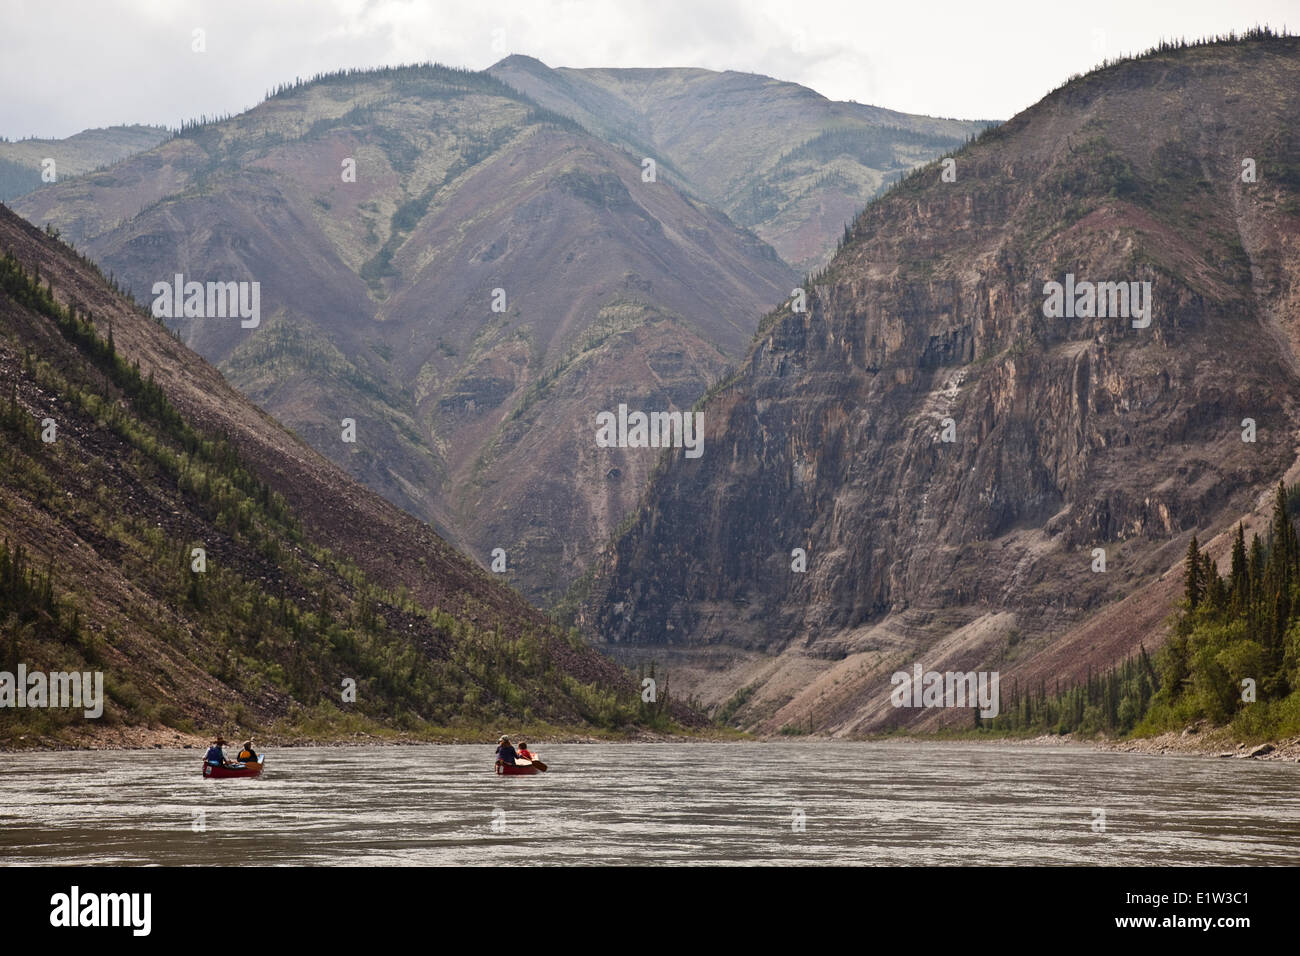 Two canoes in third canyon on Nahanni River, Nahanni National Park Preserve, NWT, Canada. - Stock Image